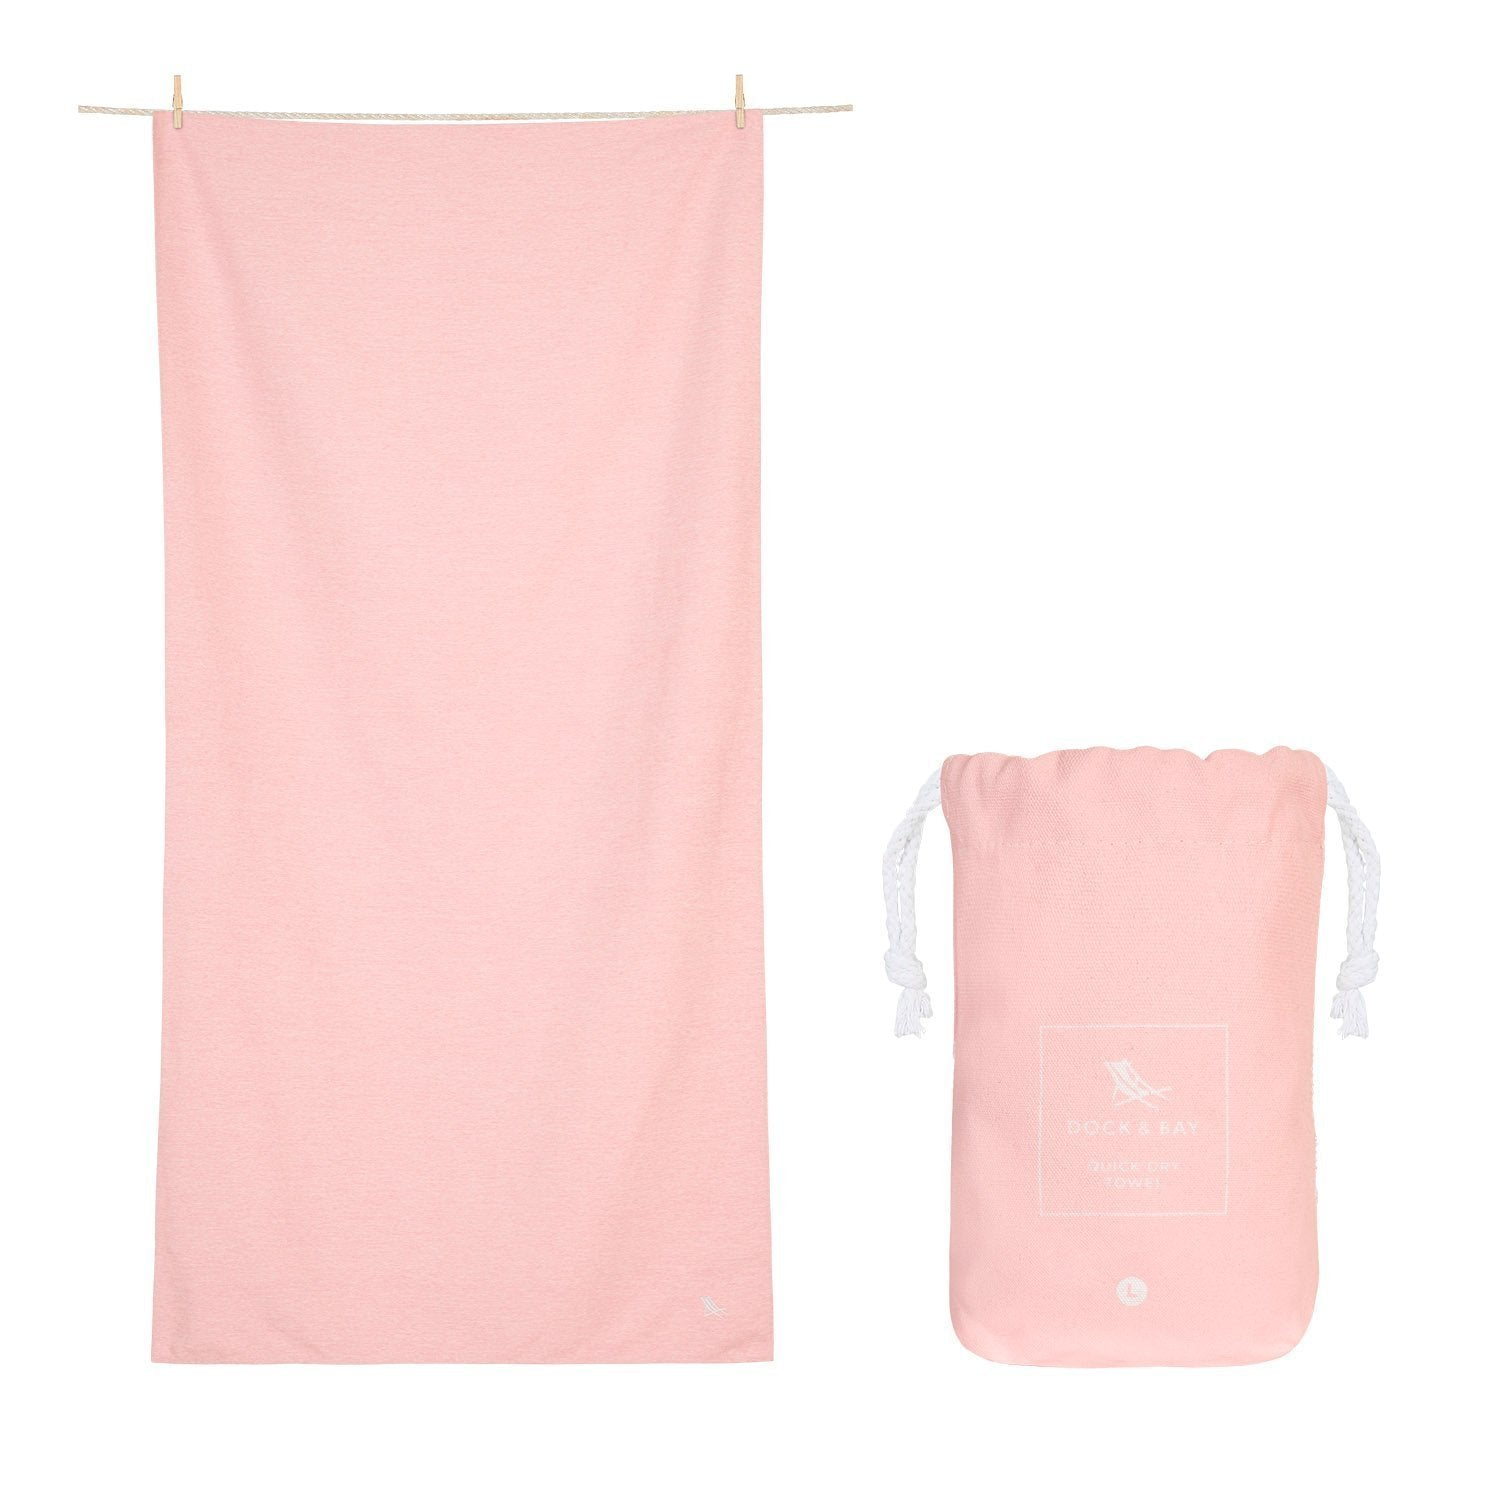 Dock & Bay Eco Towel in Island Pink - Large